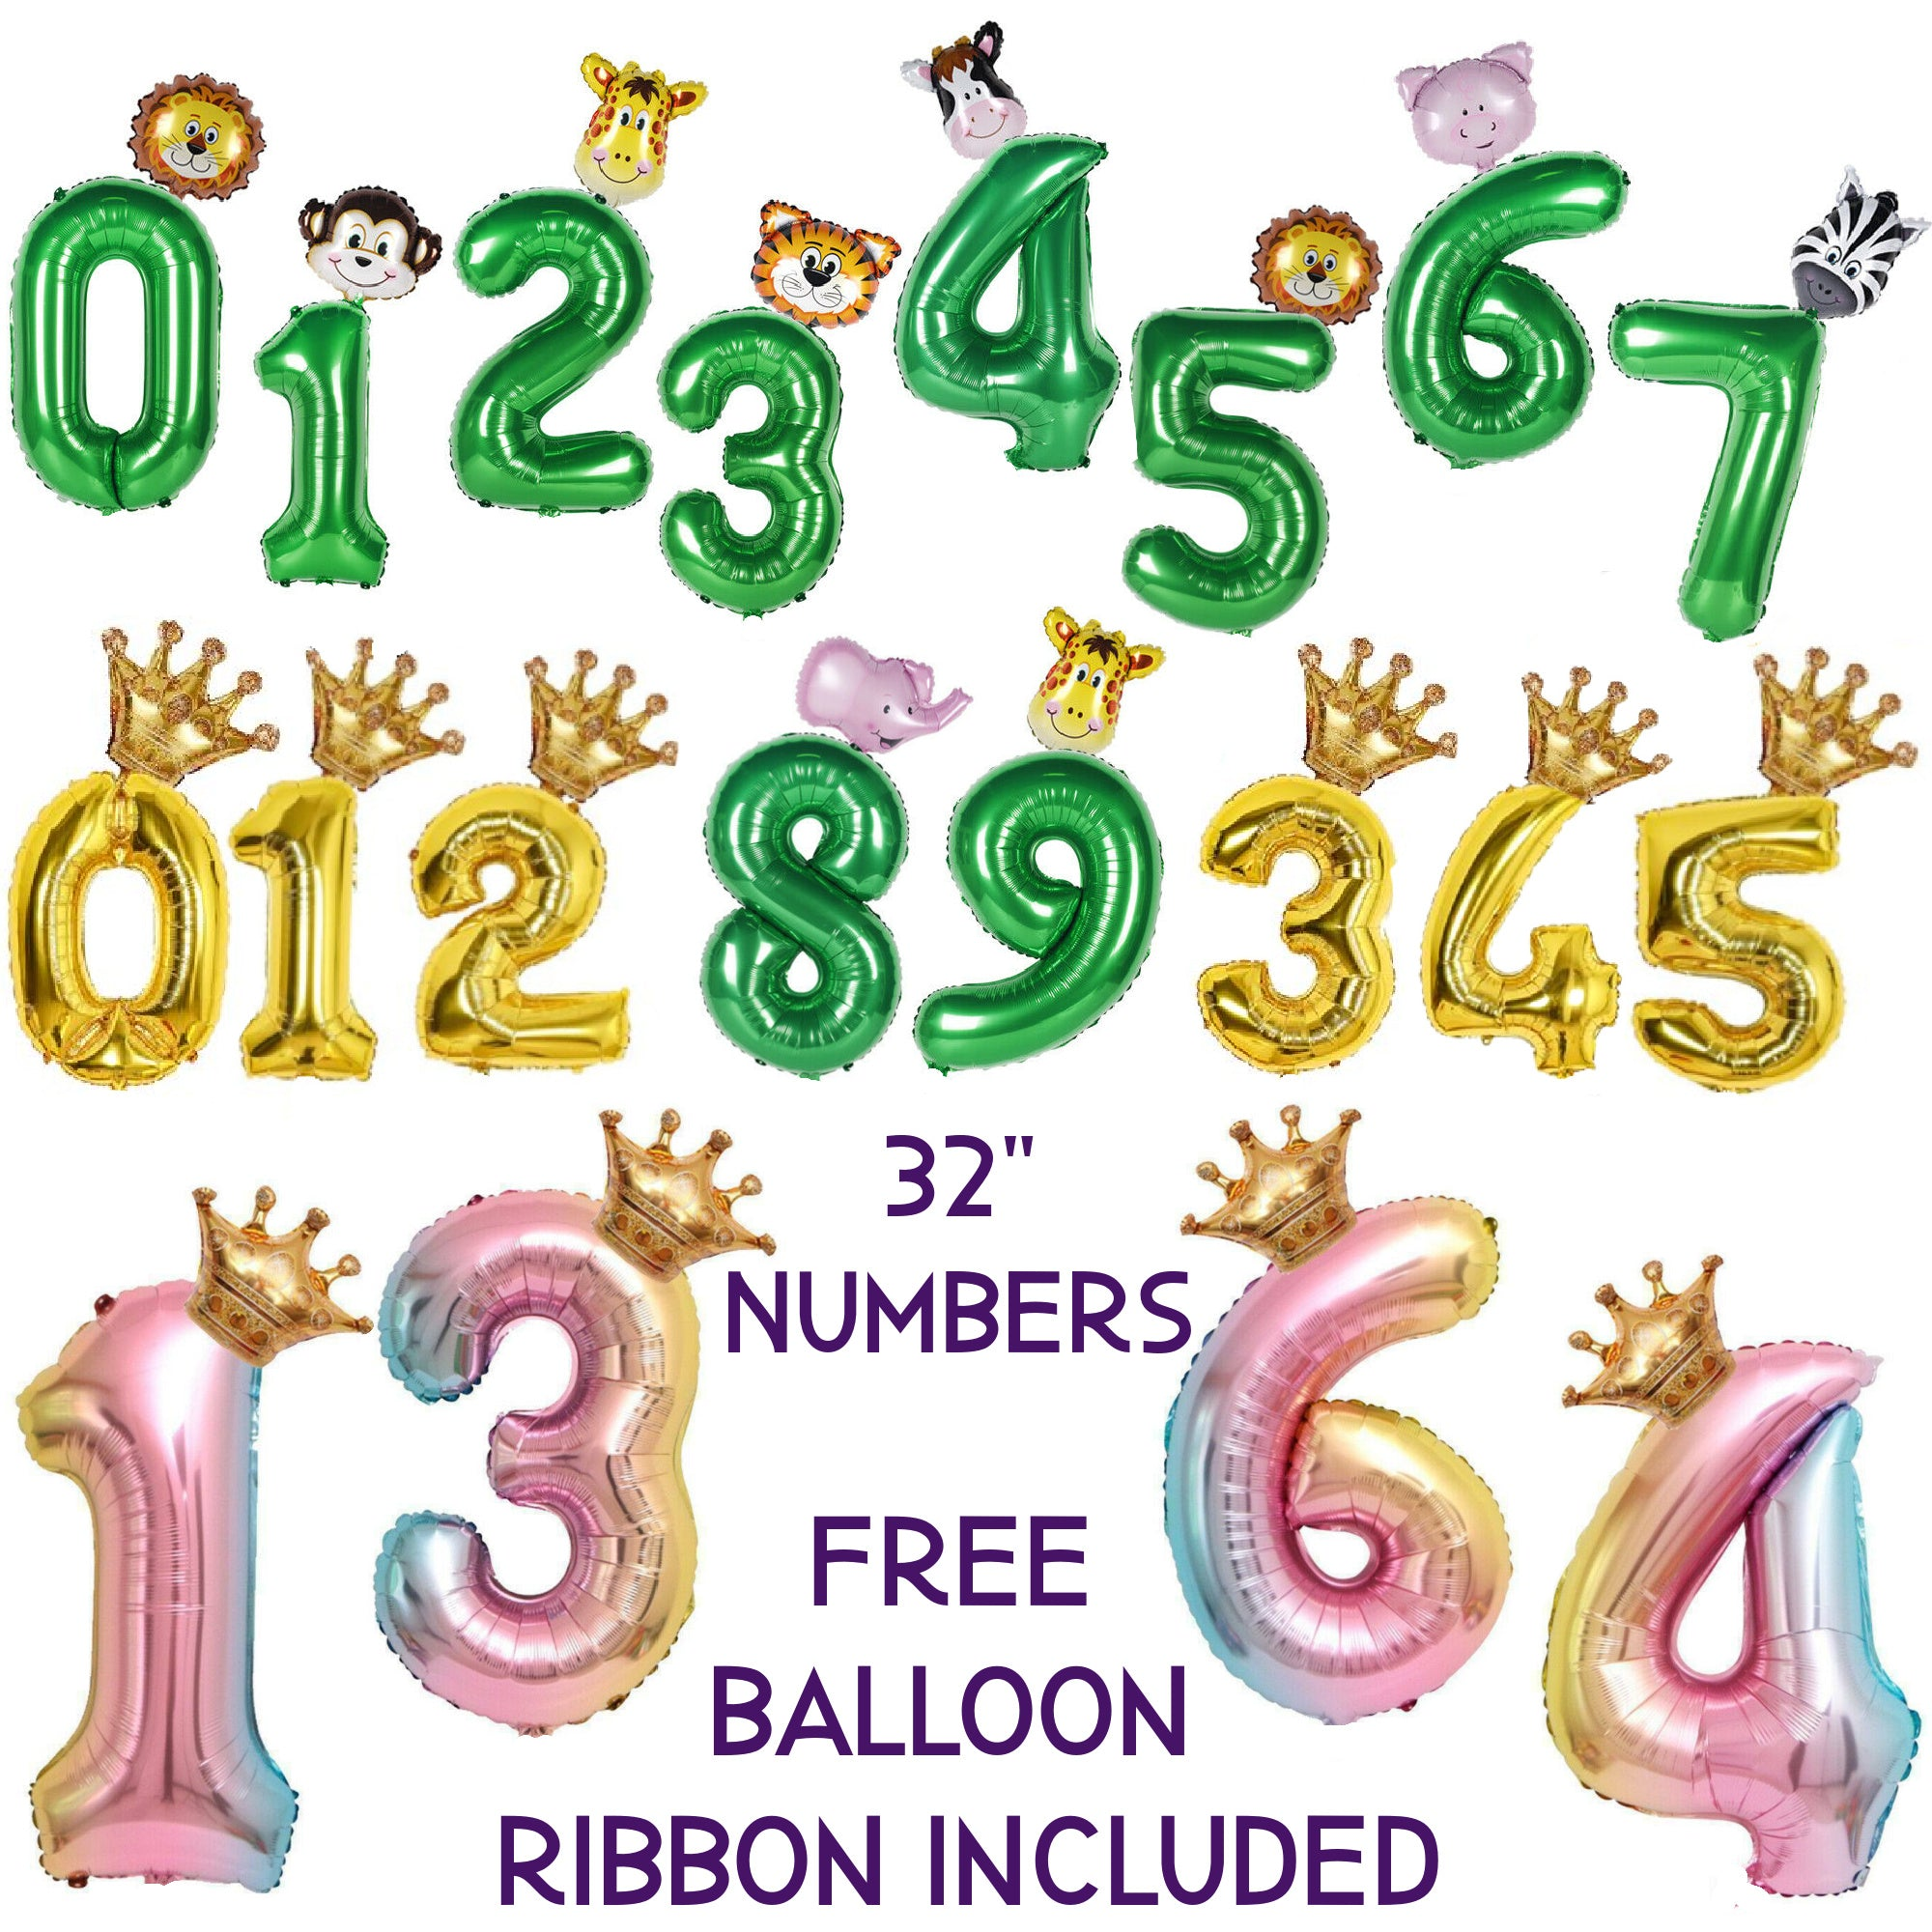 Number Balloons - Jungle Party Decorations, Rainbow Balloons and Gold Numbers